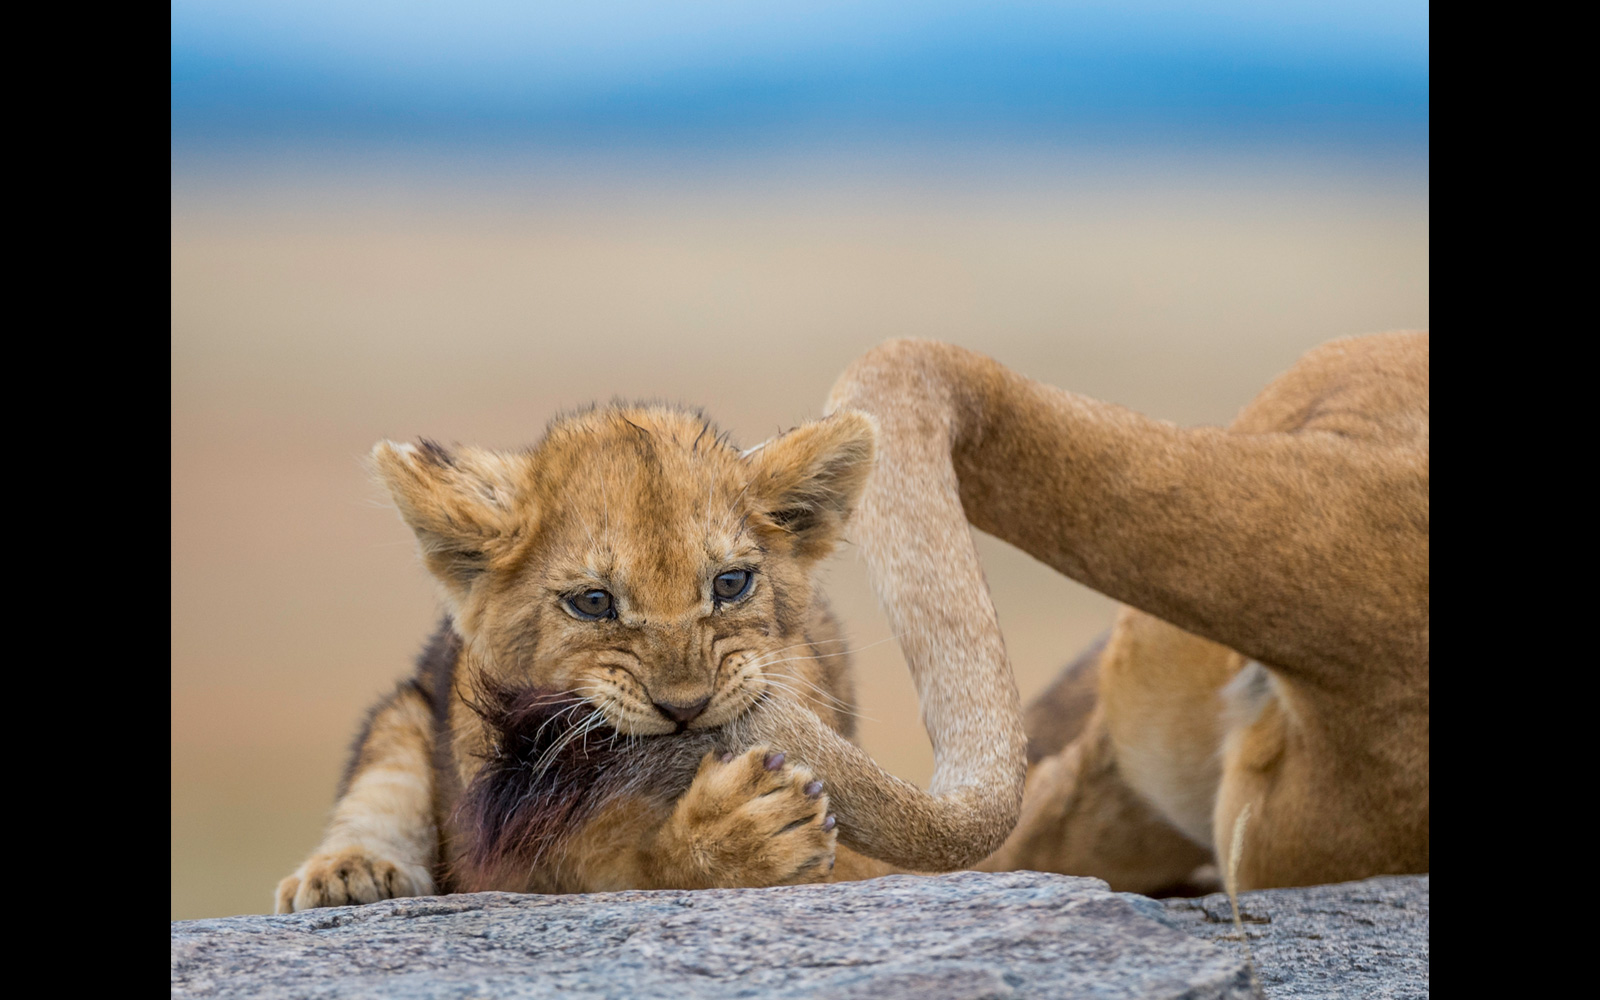 """Caught the cat by the tail"" – a lion cub in Serengeti National Park, Tanzania © Yaron Schmid (Photographer of the Year 2018 Entrant)"